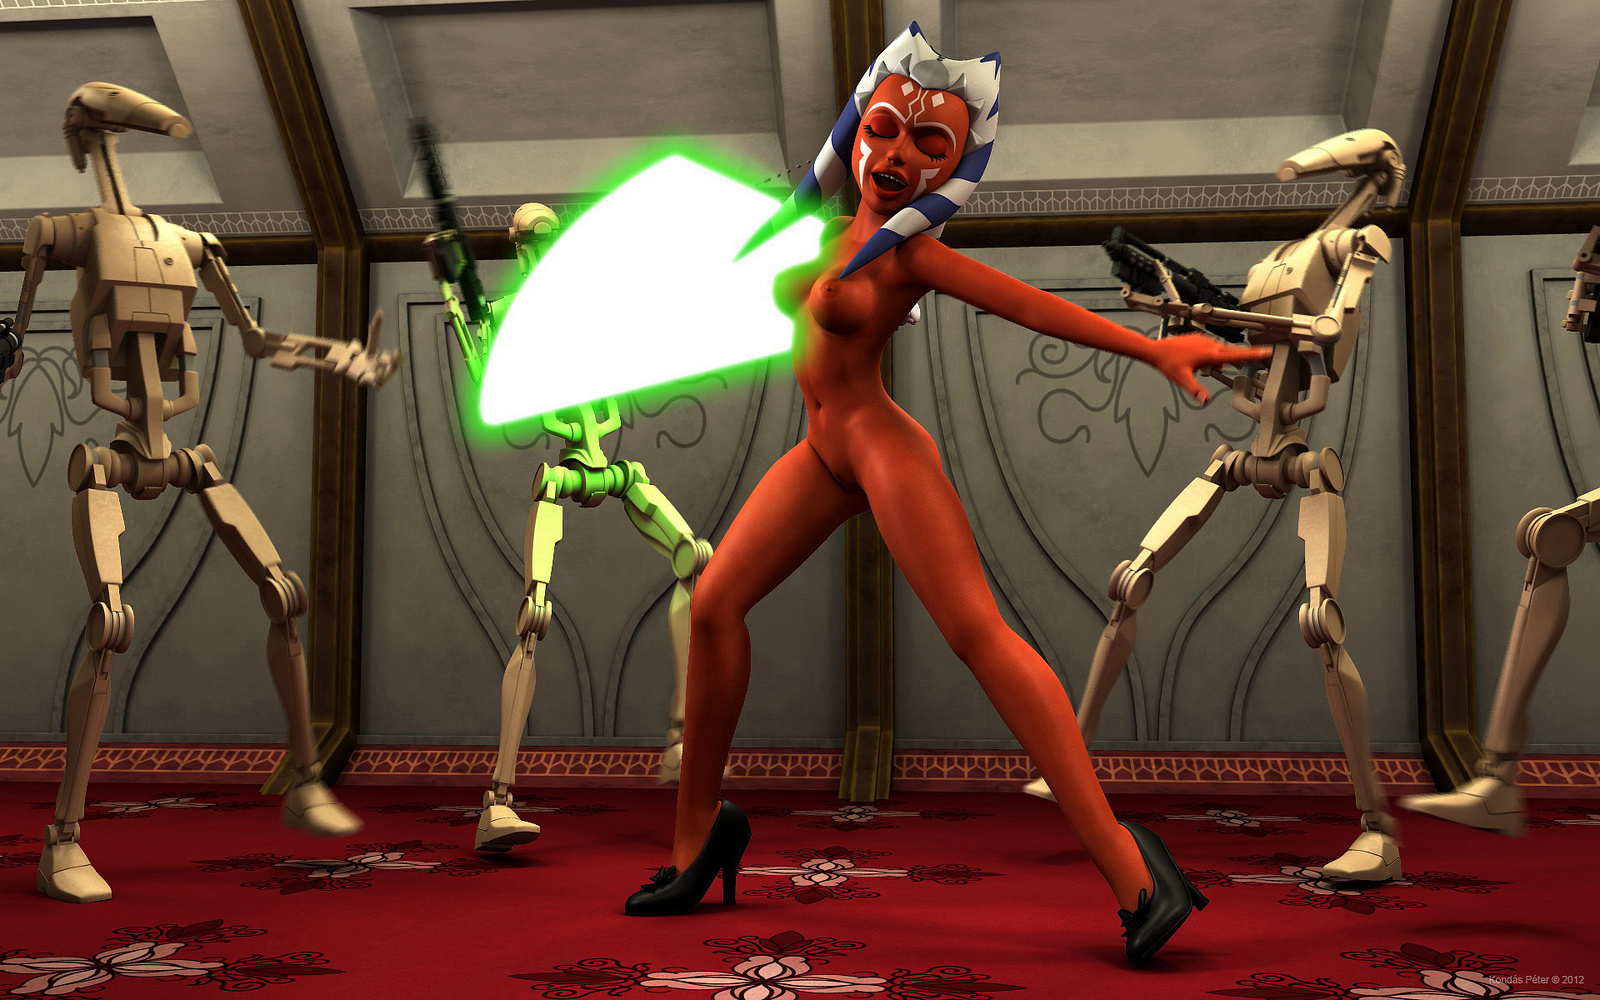 Star wars the clone wars nackt sex porn gallery